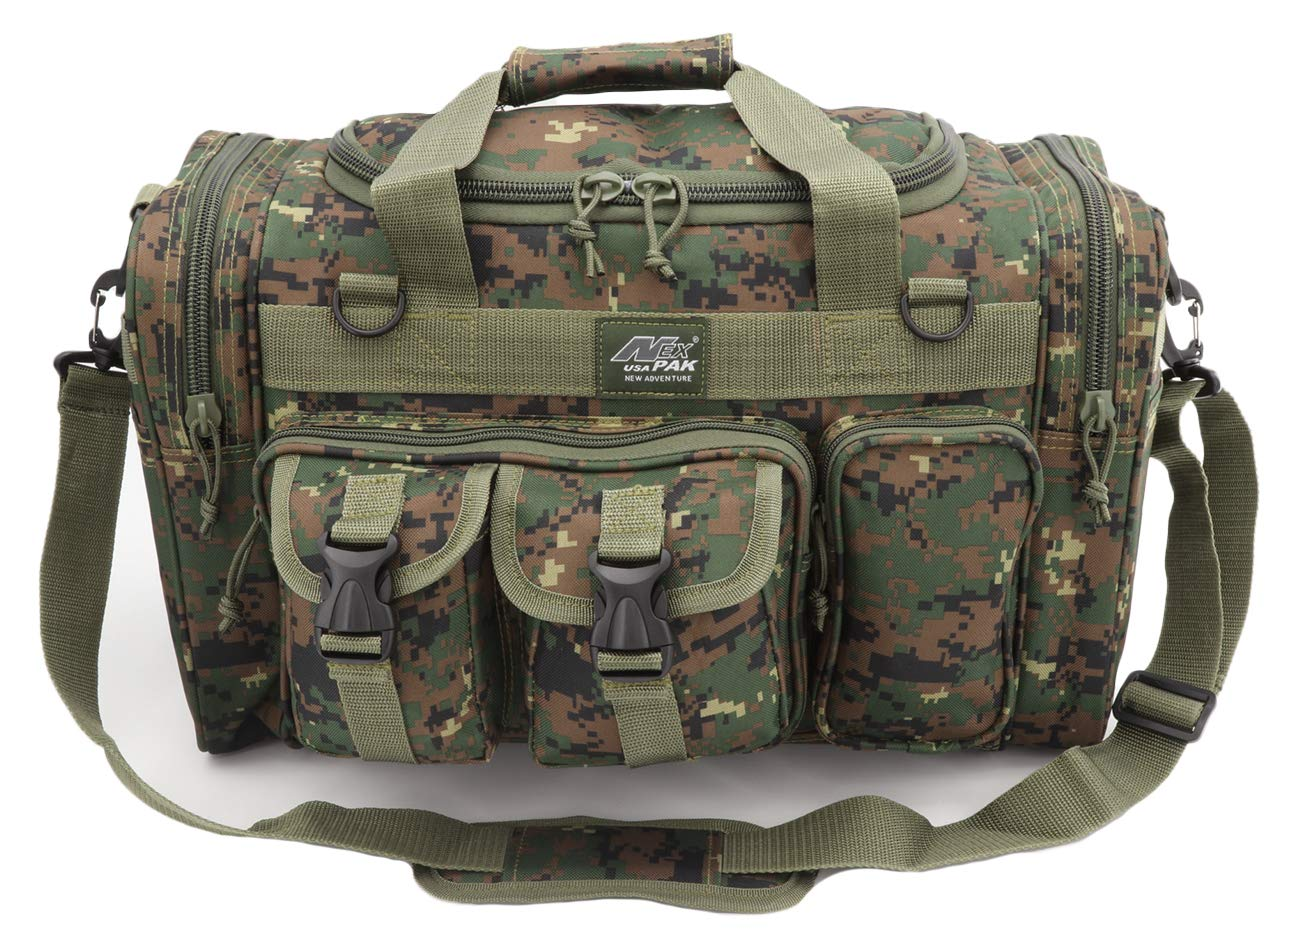 Nexpak USA TF118MRD ACU Marine Brown Digital Camo 18 in Duffel Duffle Tactical Molle Range Carry On Shoulder Bag 1728 Cu in by Nexpak